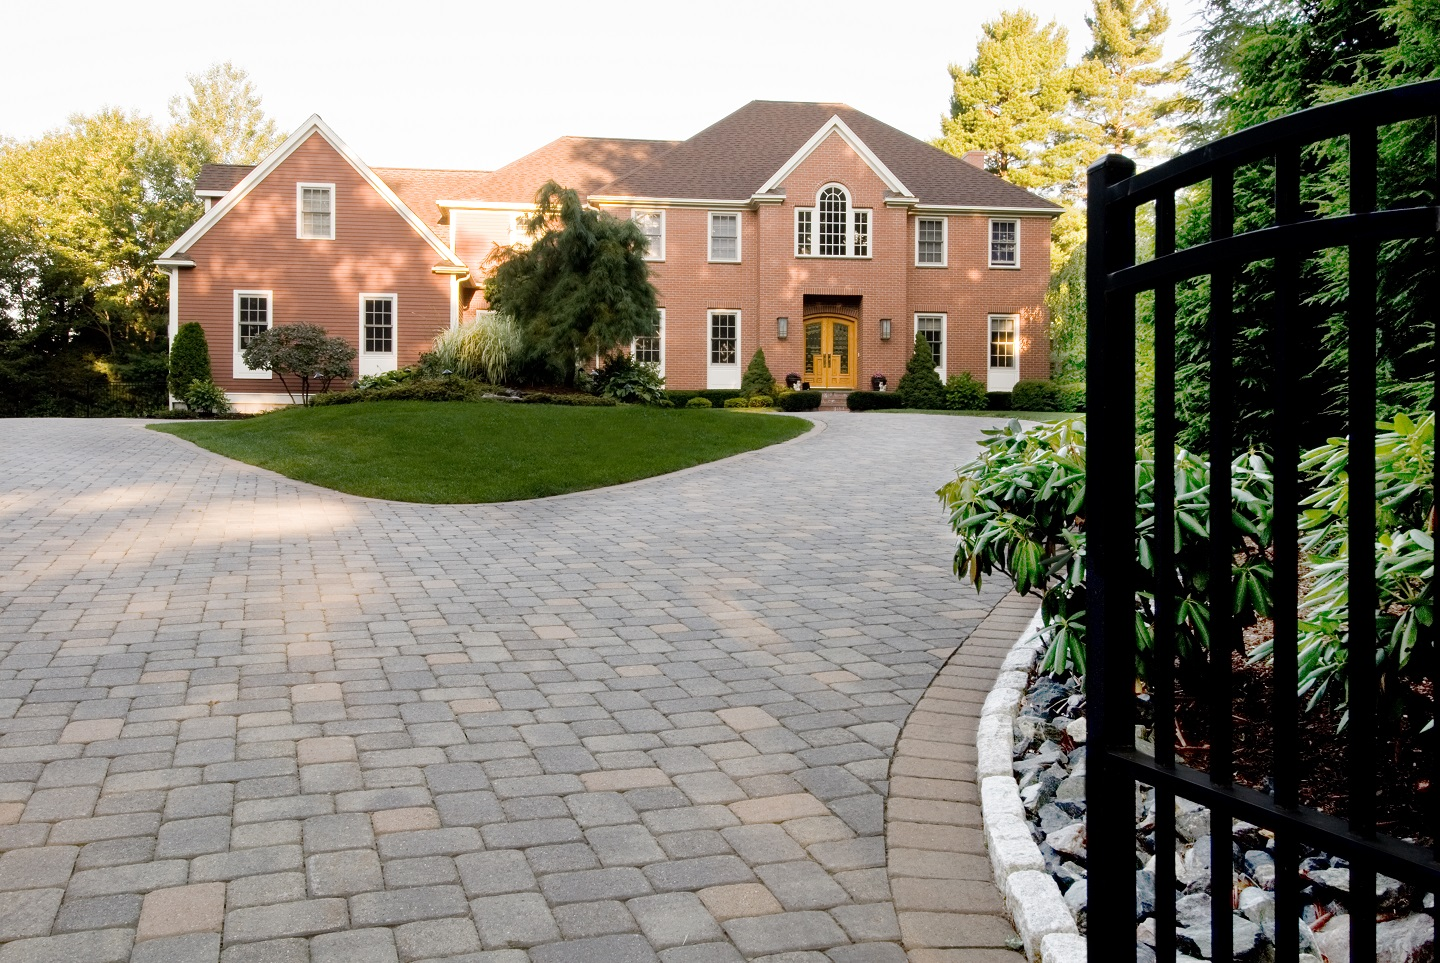 High-quality driveway pavers in Cambridge MA